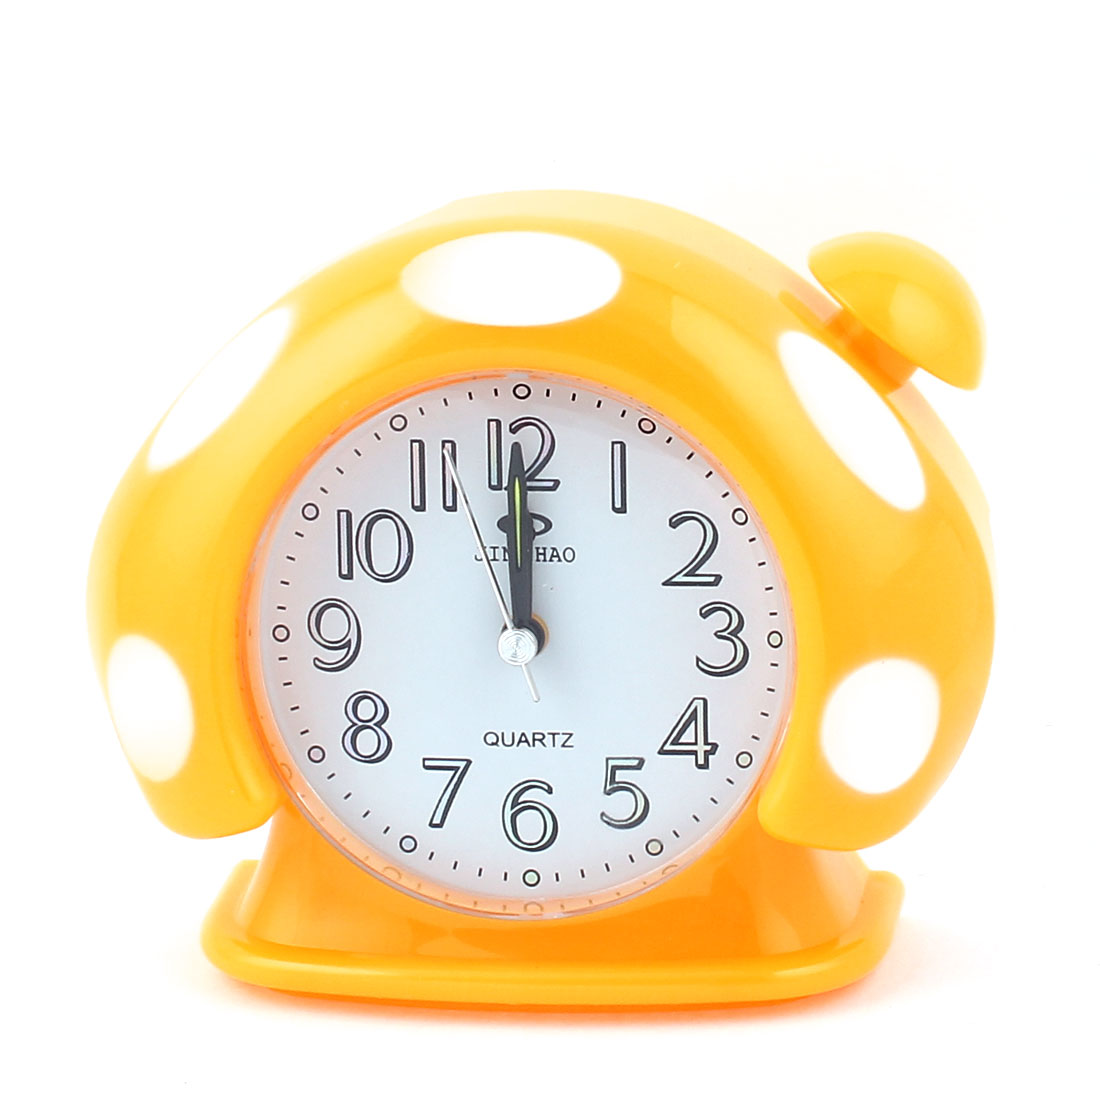 Home Office Plastic Mushroom Shaped Digital LCD Desktop Alarm Clock Yellow